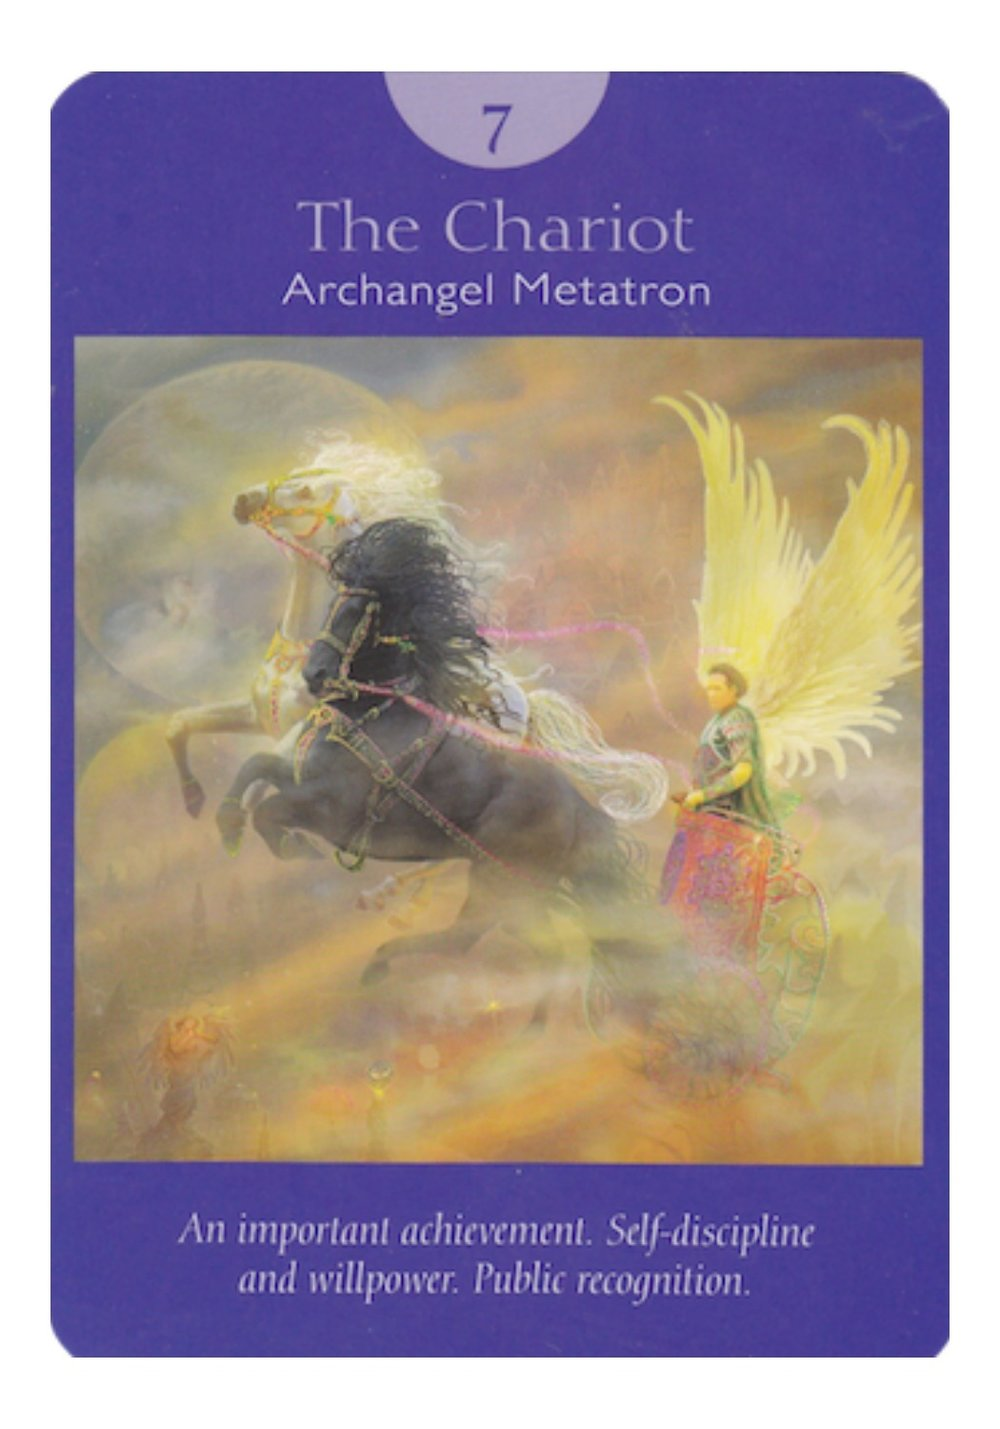 The Chariot - Archangel Metatron (Angel Tarot Cards - Doreen Virtue & Radleigh Valentine)